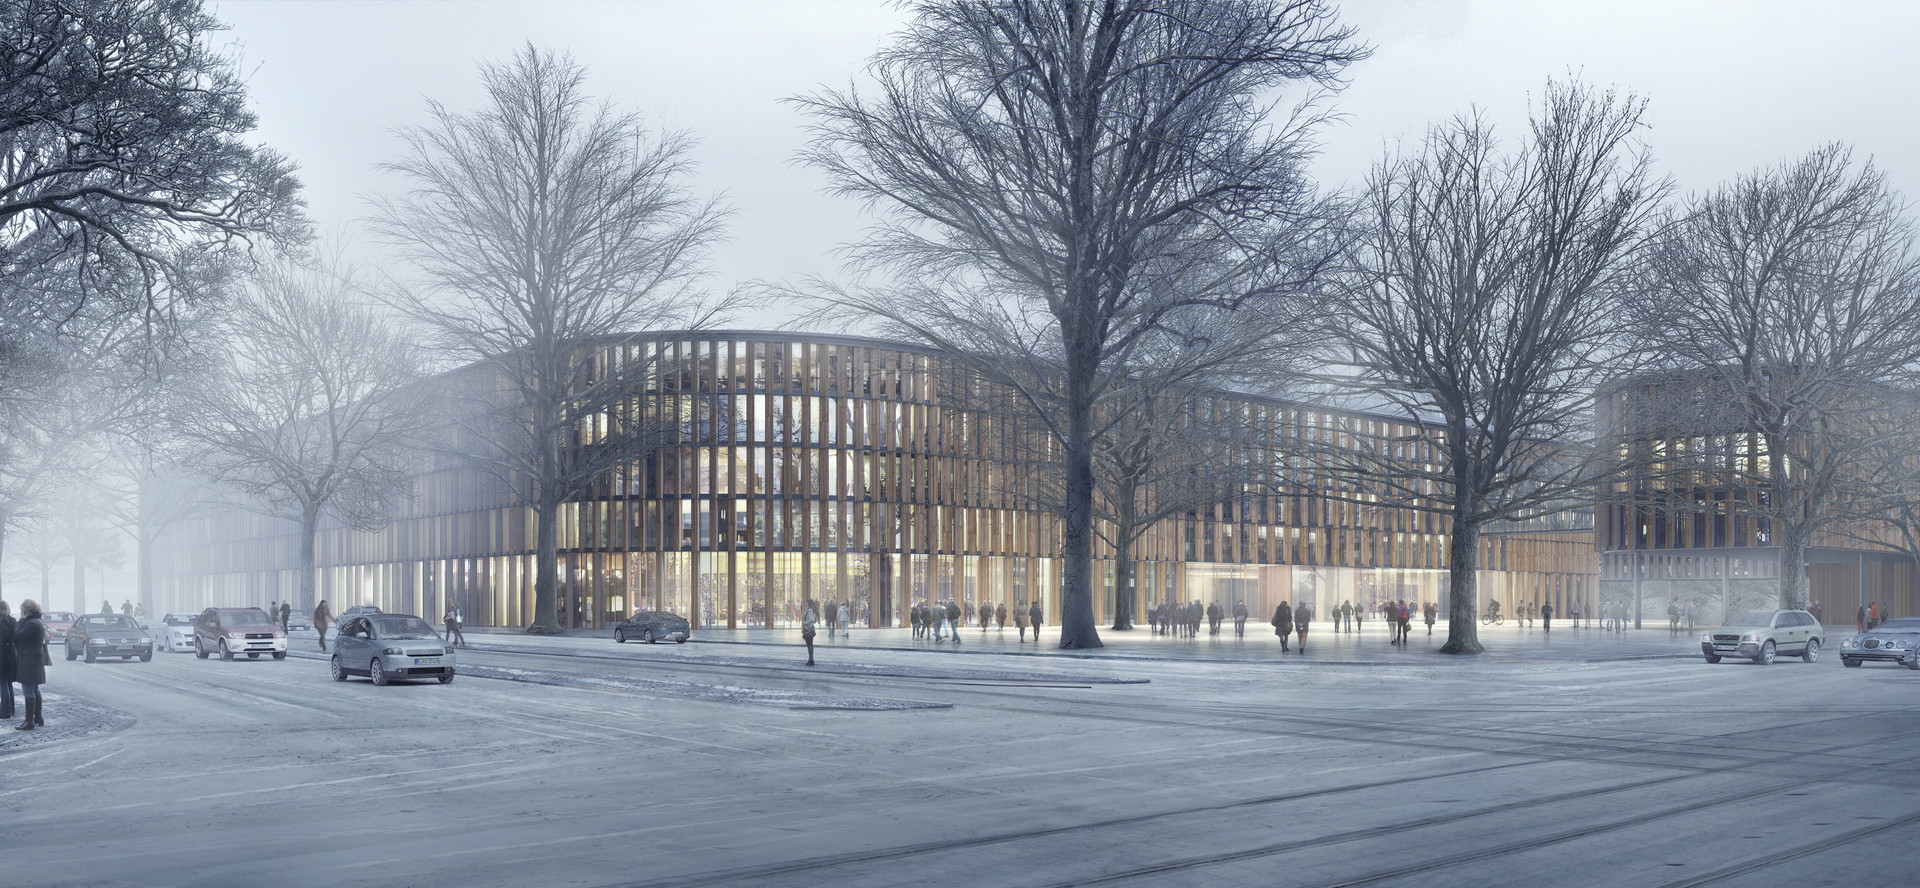 Courthouse Munich, Ben Dieckmann architects